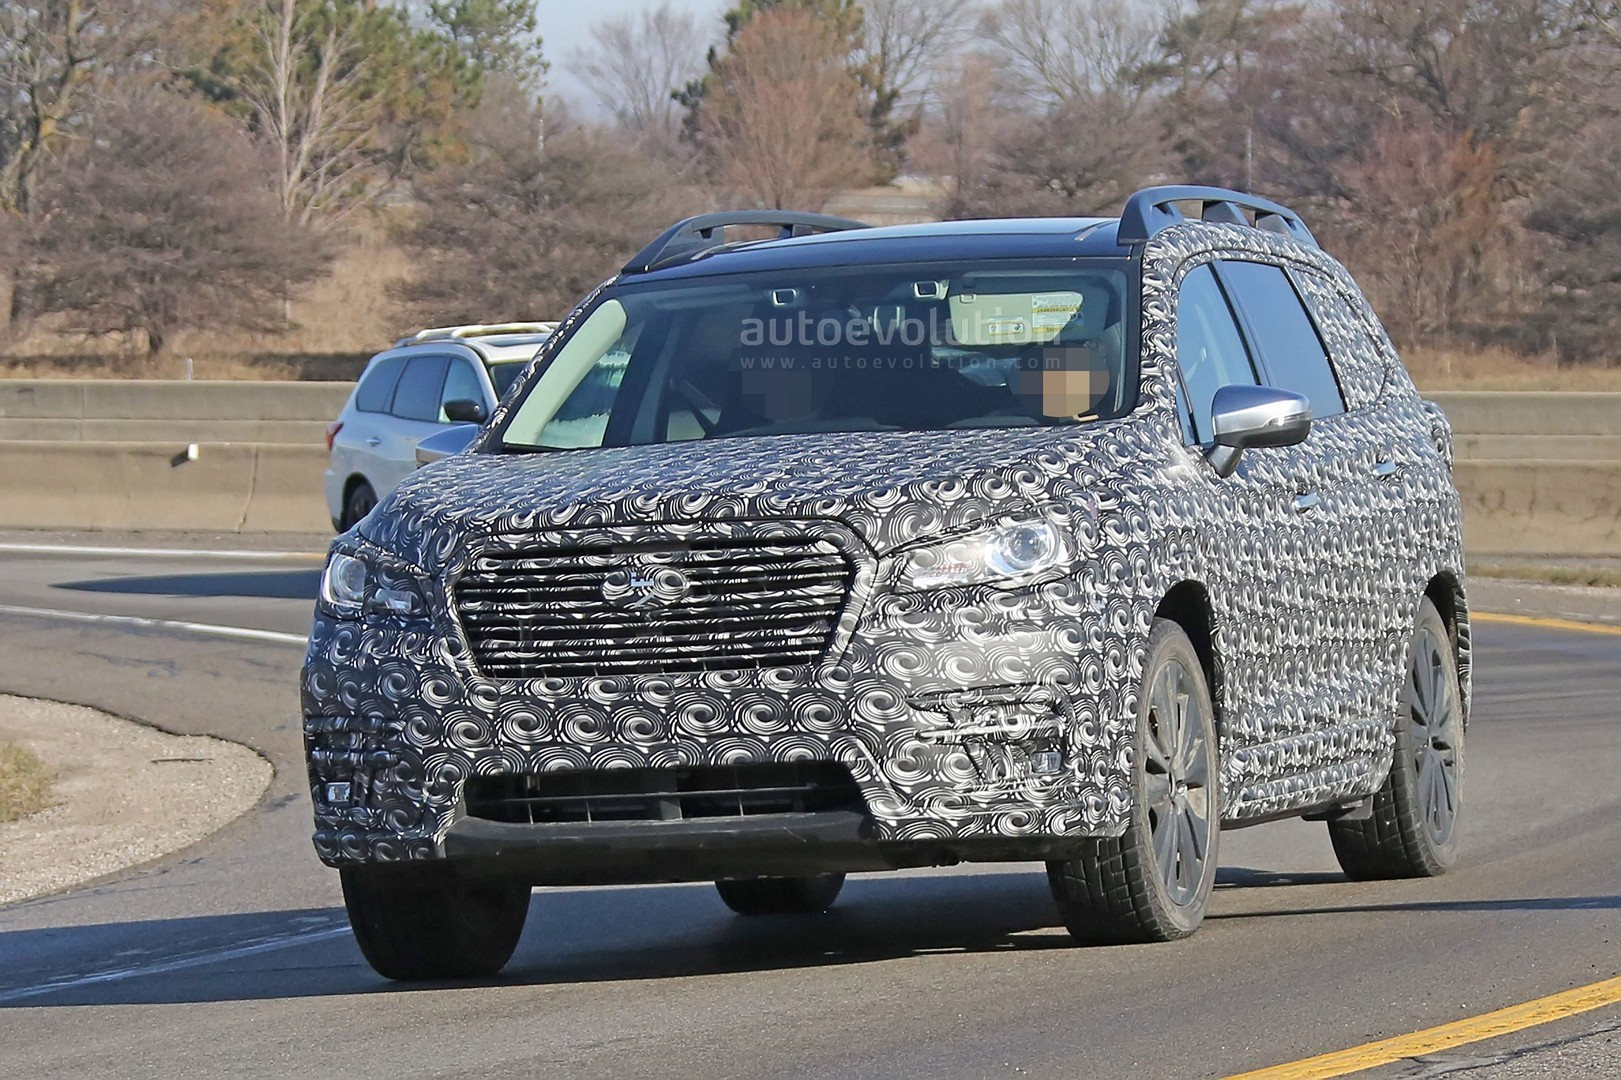 2018 subaru ascent. wonderful 2018 2018 subaru ascent 3row crossover suv spied in detail for subaru ascent o